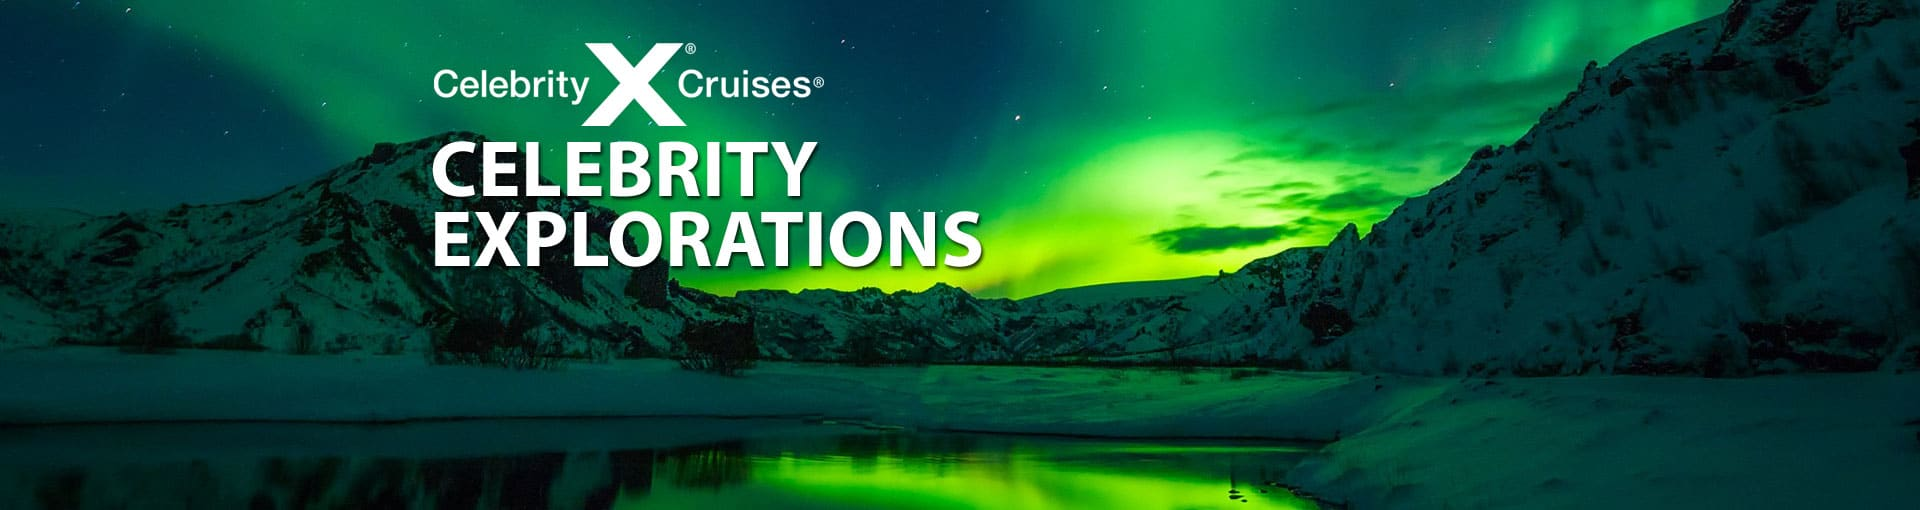 Celebrity Cruises - Celebrity Explorations Vacation Packages